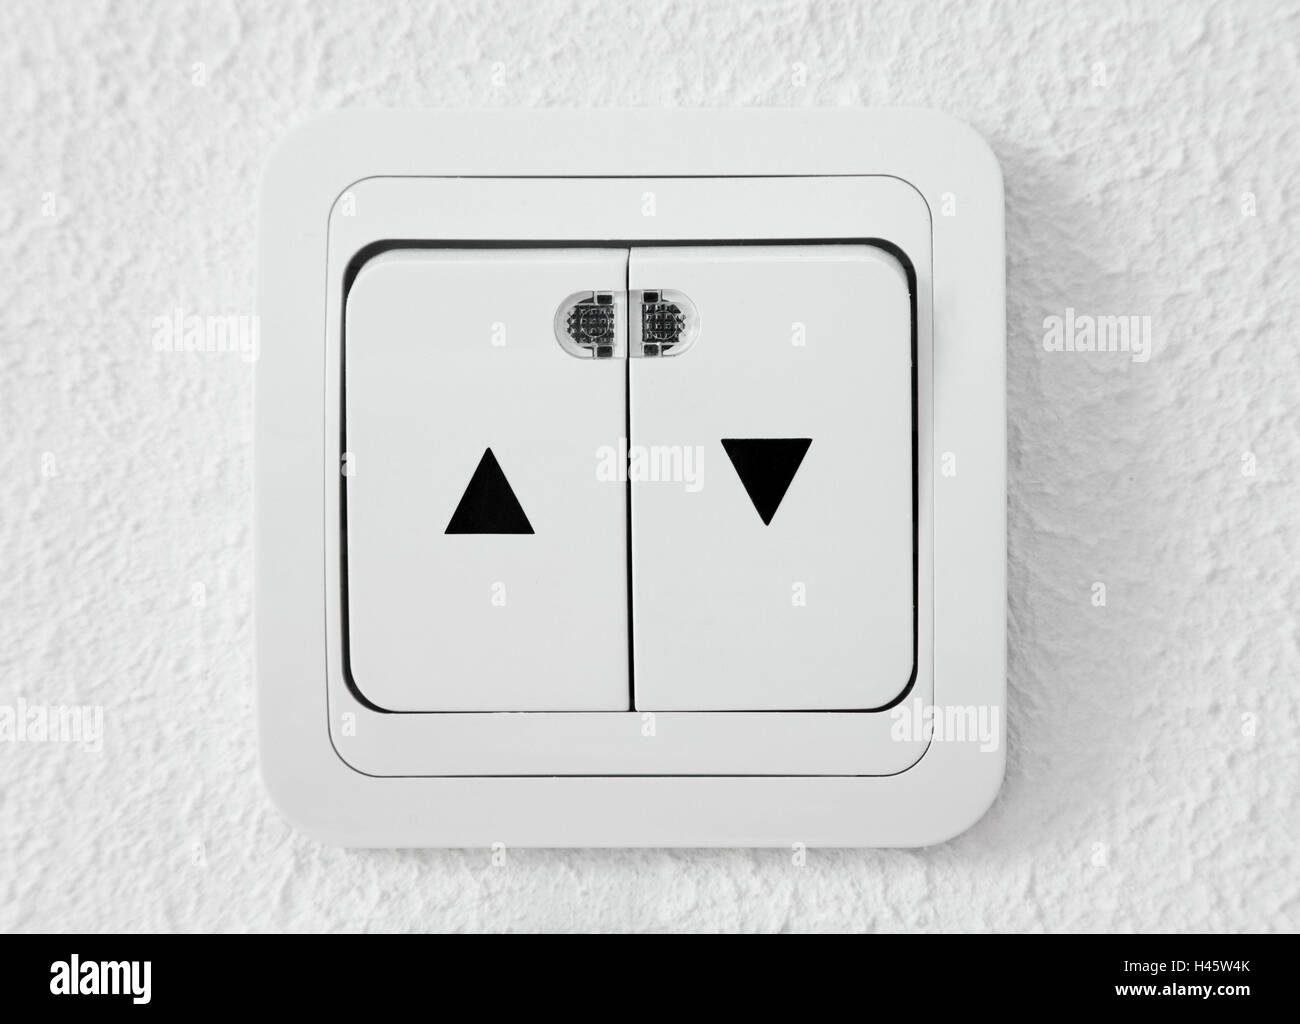 Shutter switch, on, from, toggle, switch, electrically, high, under it, buttons, Tastschalter, electricity, shutter, - Stock Image